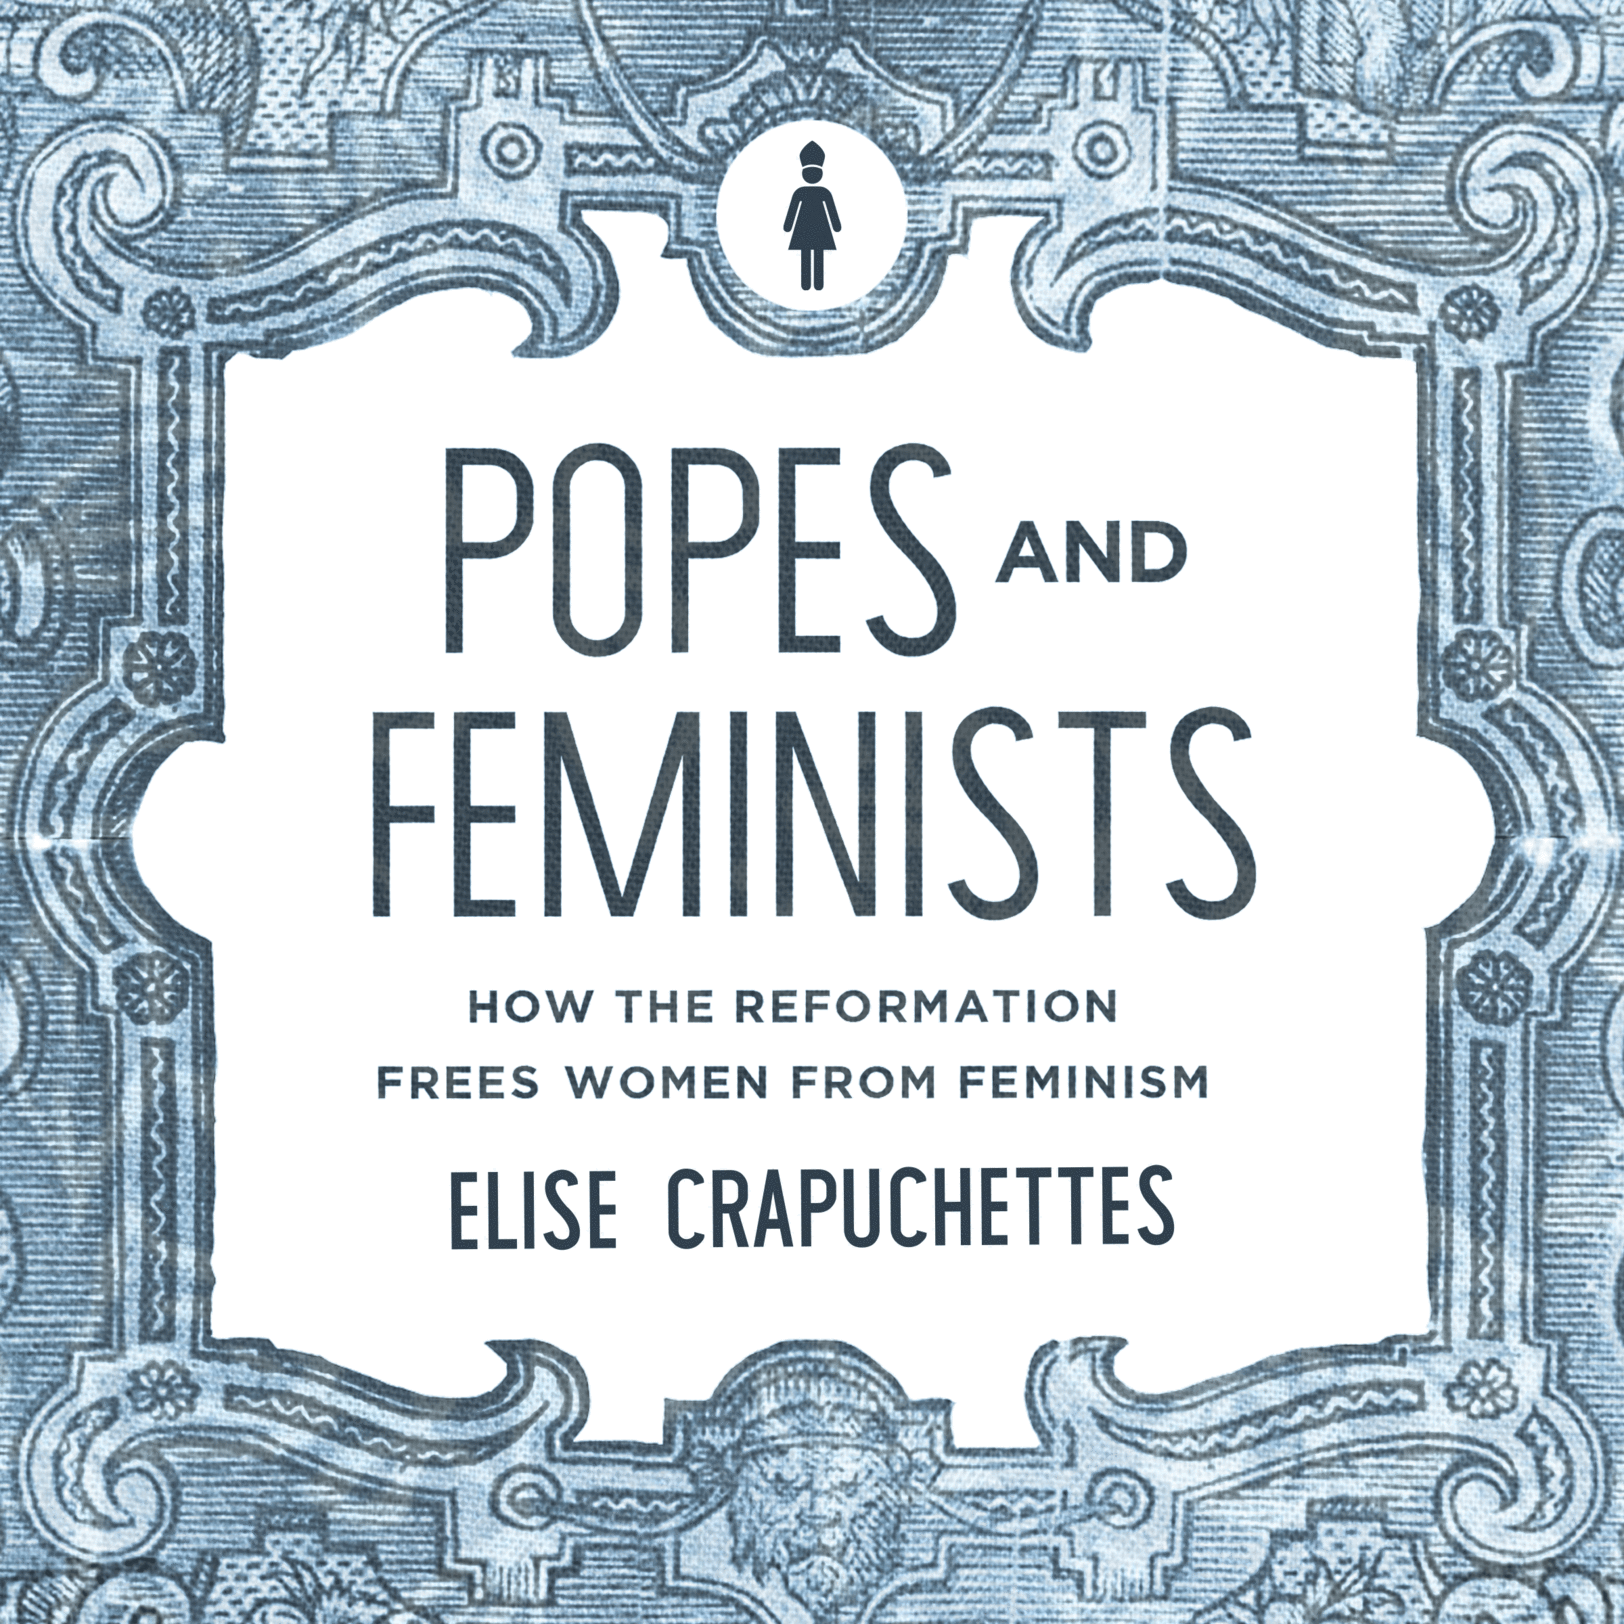 Popes and Feminists: How the Reformation Frees Women from Feminism Audiobook